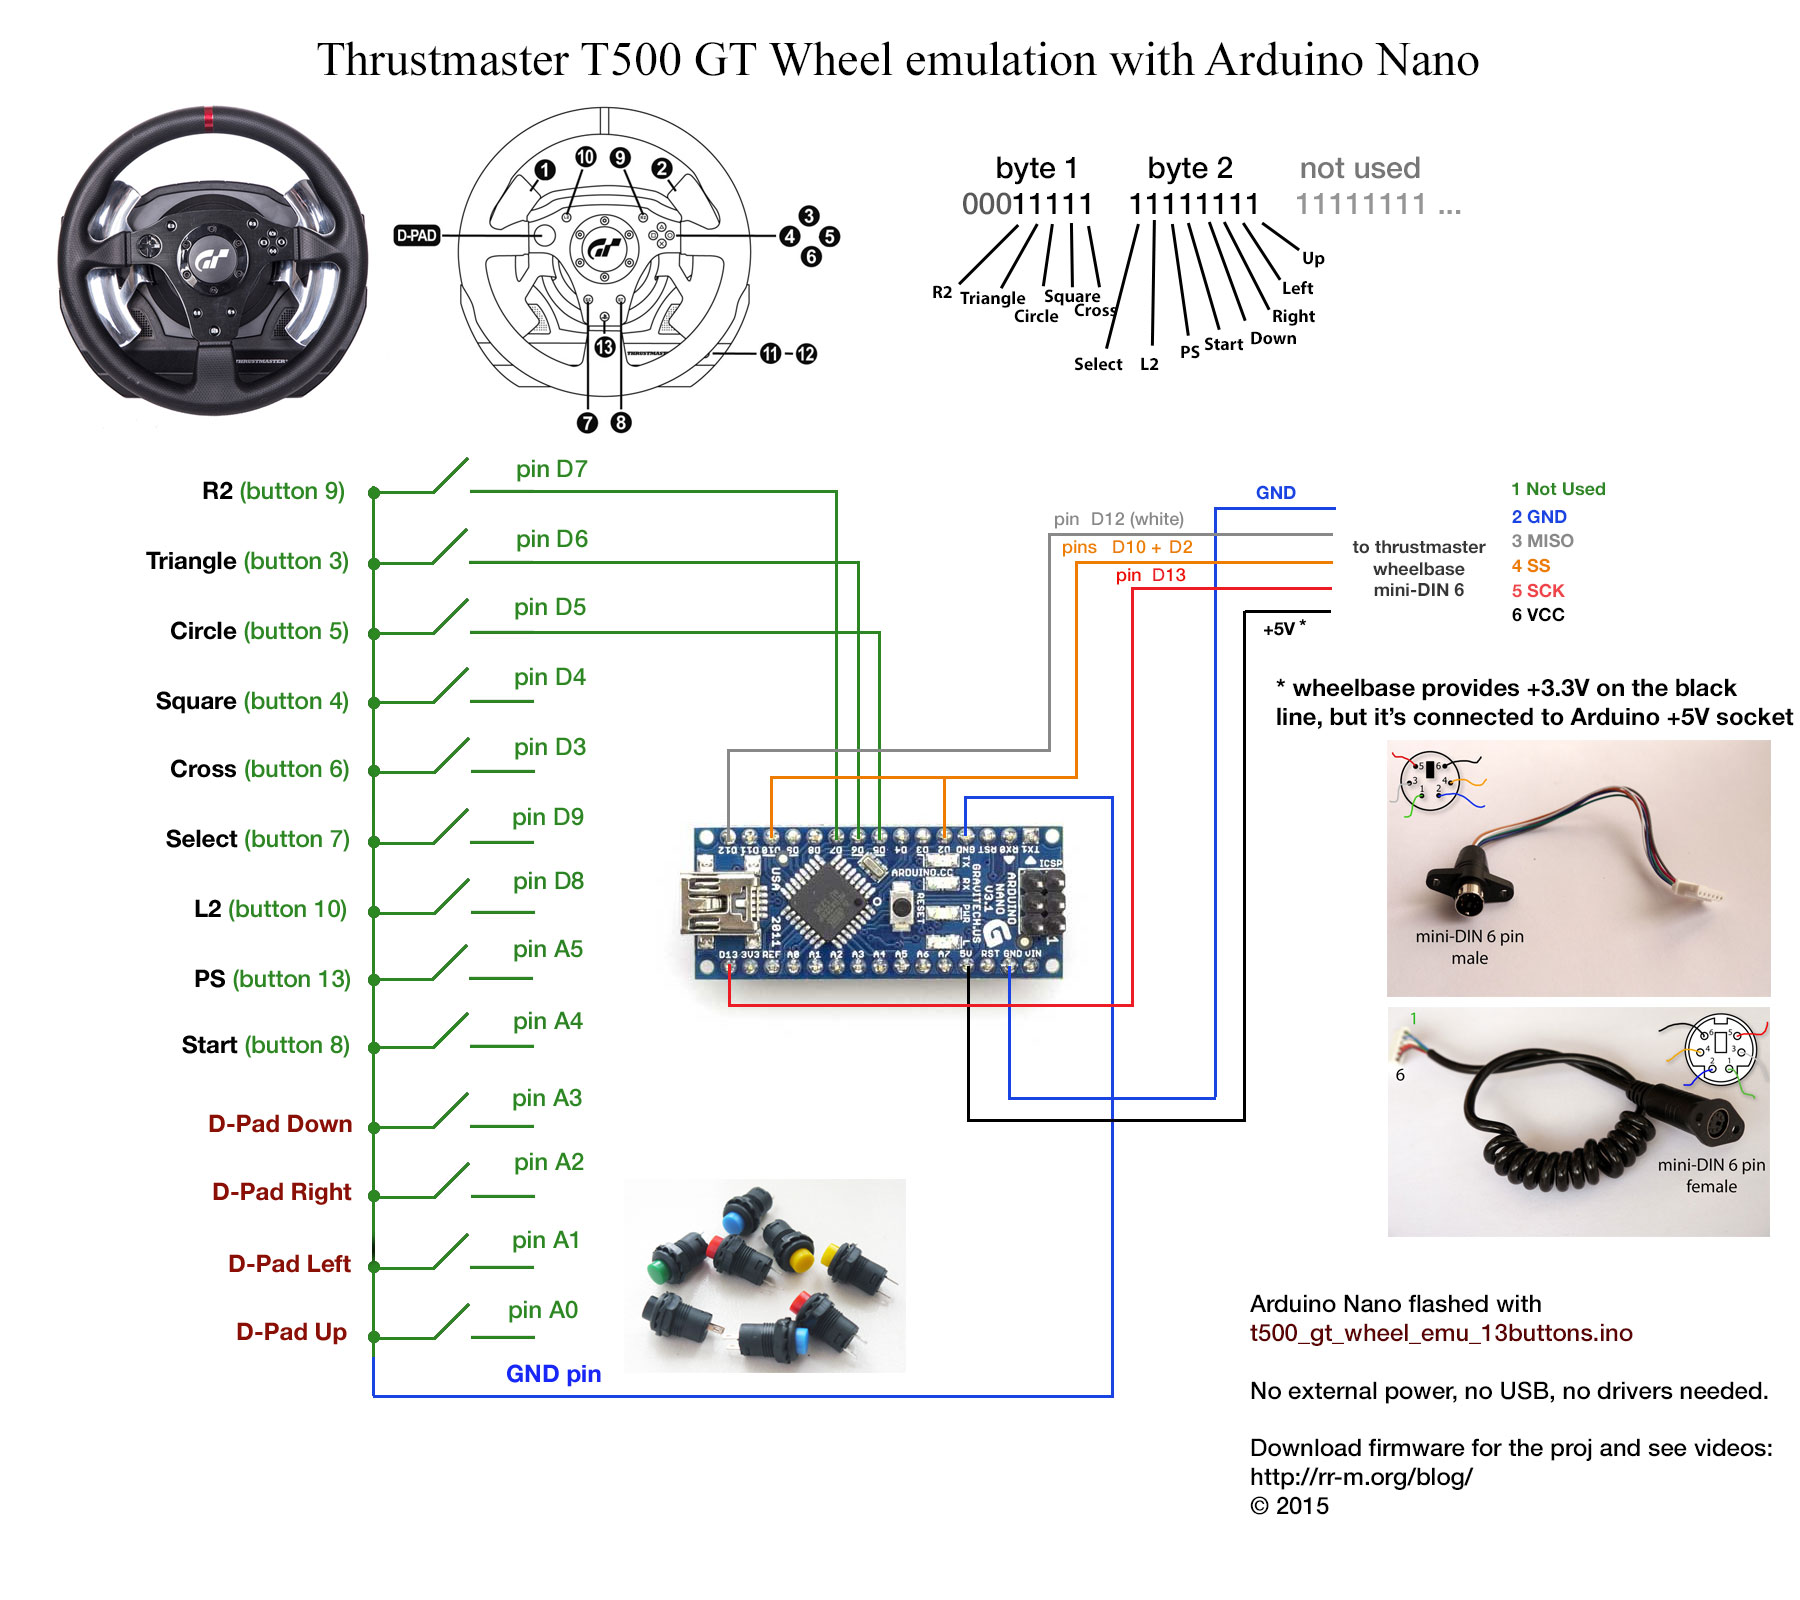 Emulating Thrustmaster T500 GT Wheel electronics with Arduino | My on ipad schematic, atmega328 schematic, msp430 schematic, breadboard schematic, apple schematic, pcb schematic, shields schematic, wireless schematic, audio schematic, robot schematic, wiring schematic, iphone schematic, atmega32u4 schematic, servo schematic,